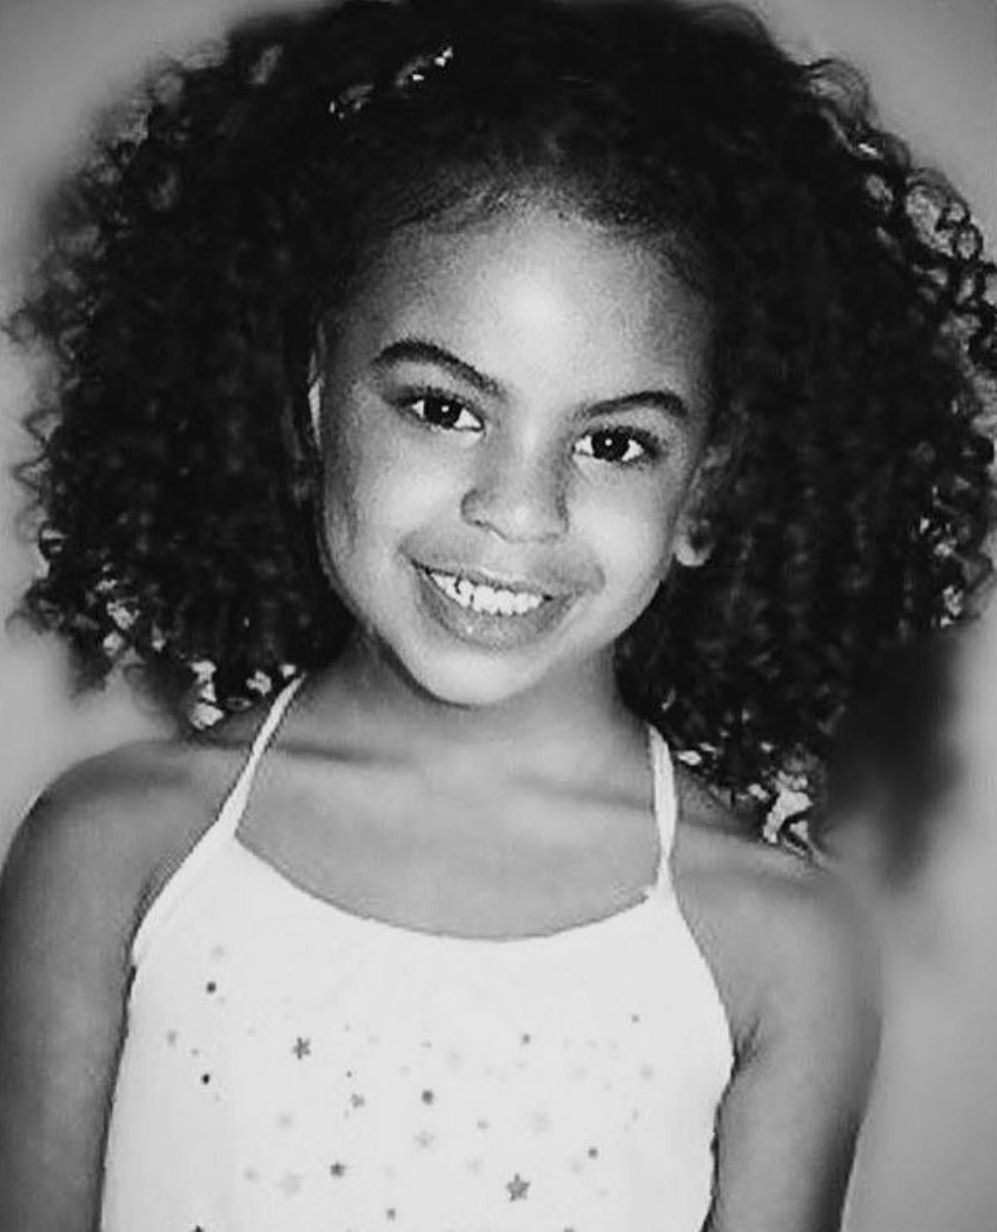 Beyonce S And Jay Z S Daughter Blue Ivy She Looks Exactly Like Her Mama She S So Pretty Blue Ivy Beyonce Blue Ivy Carter